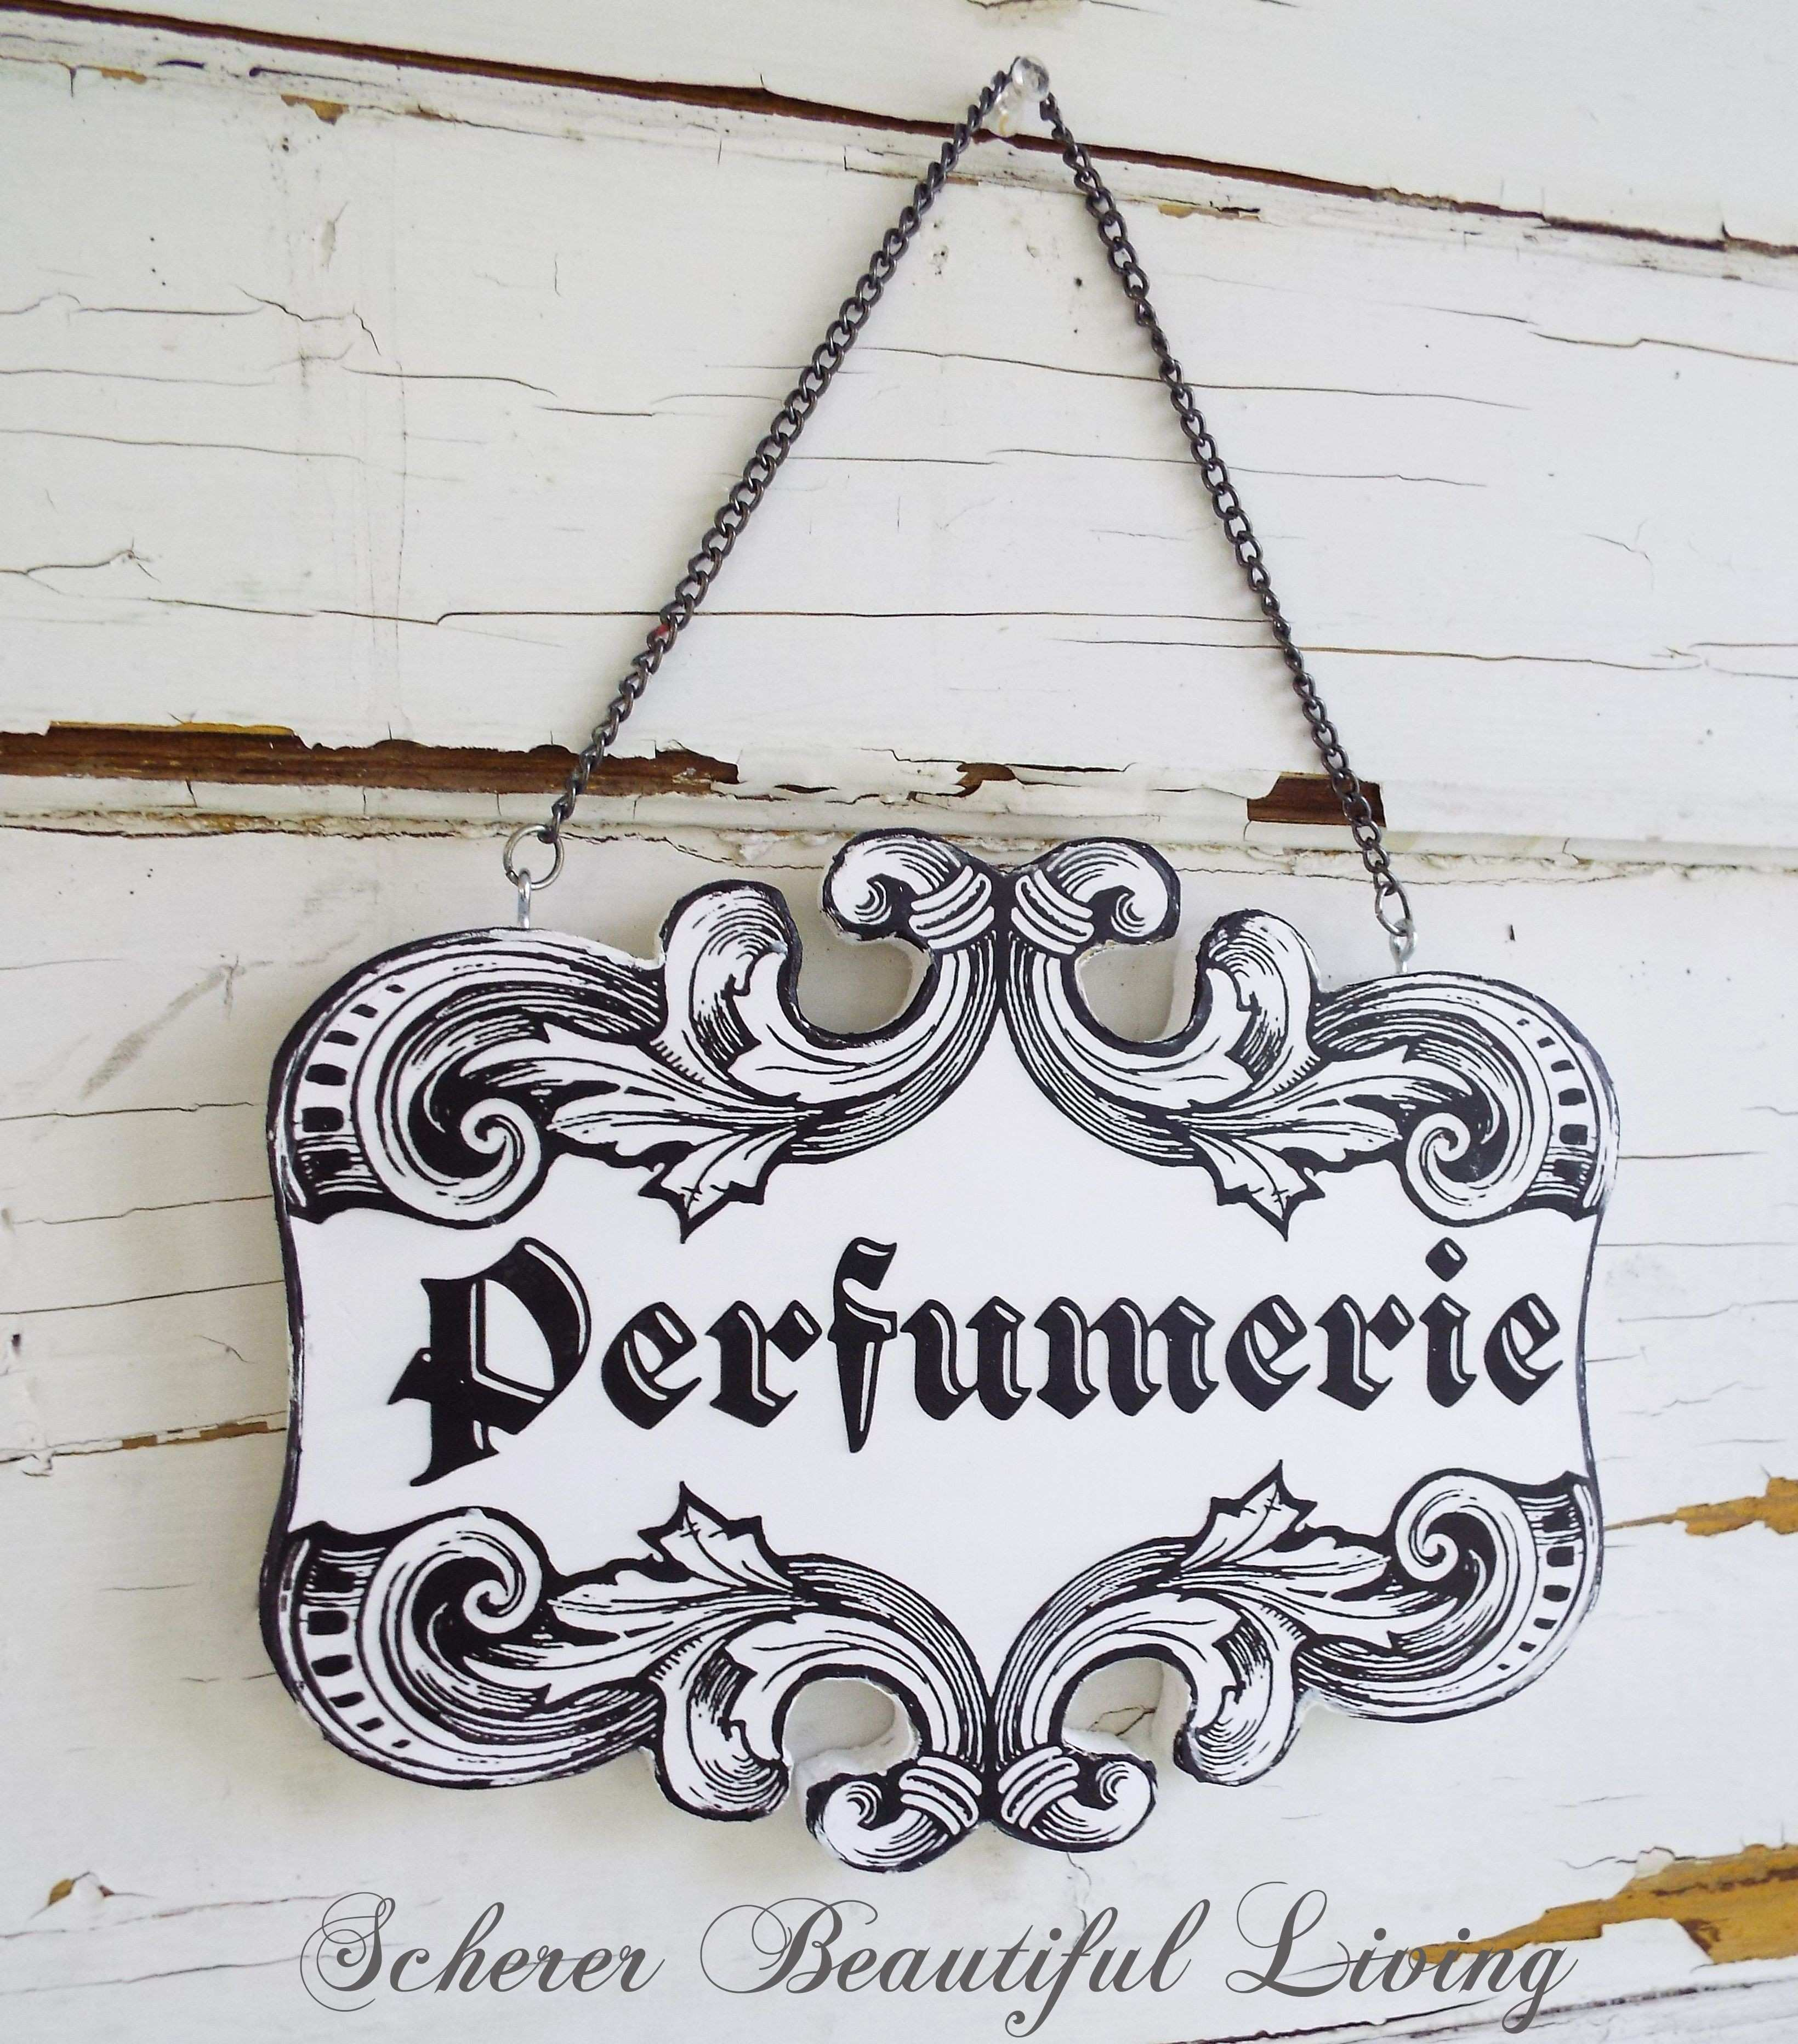 Rococo French Perfume Plaque Sign Home Decor Black and White Chic